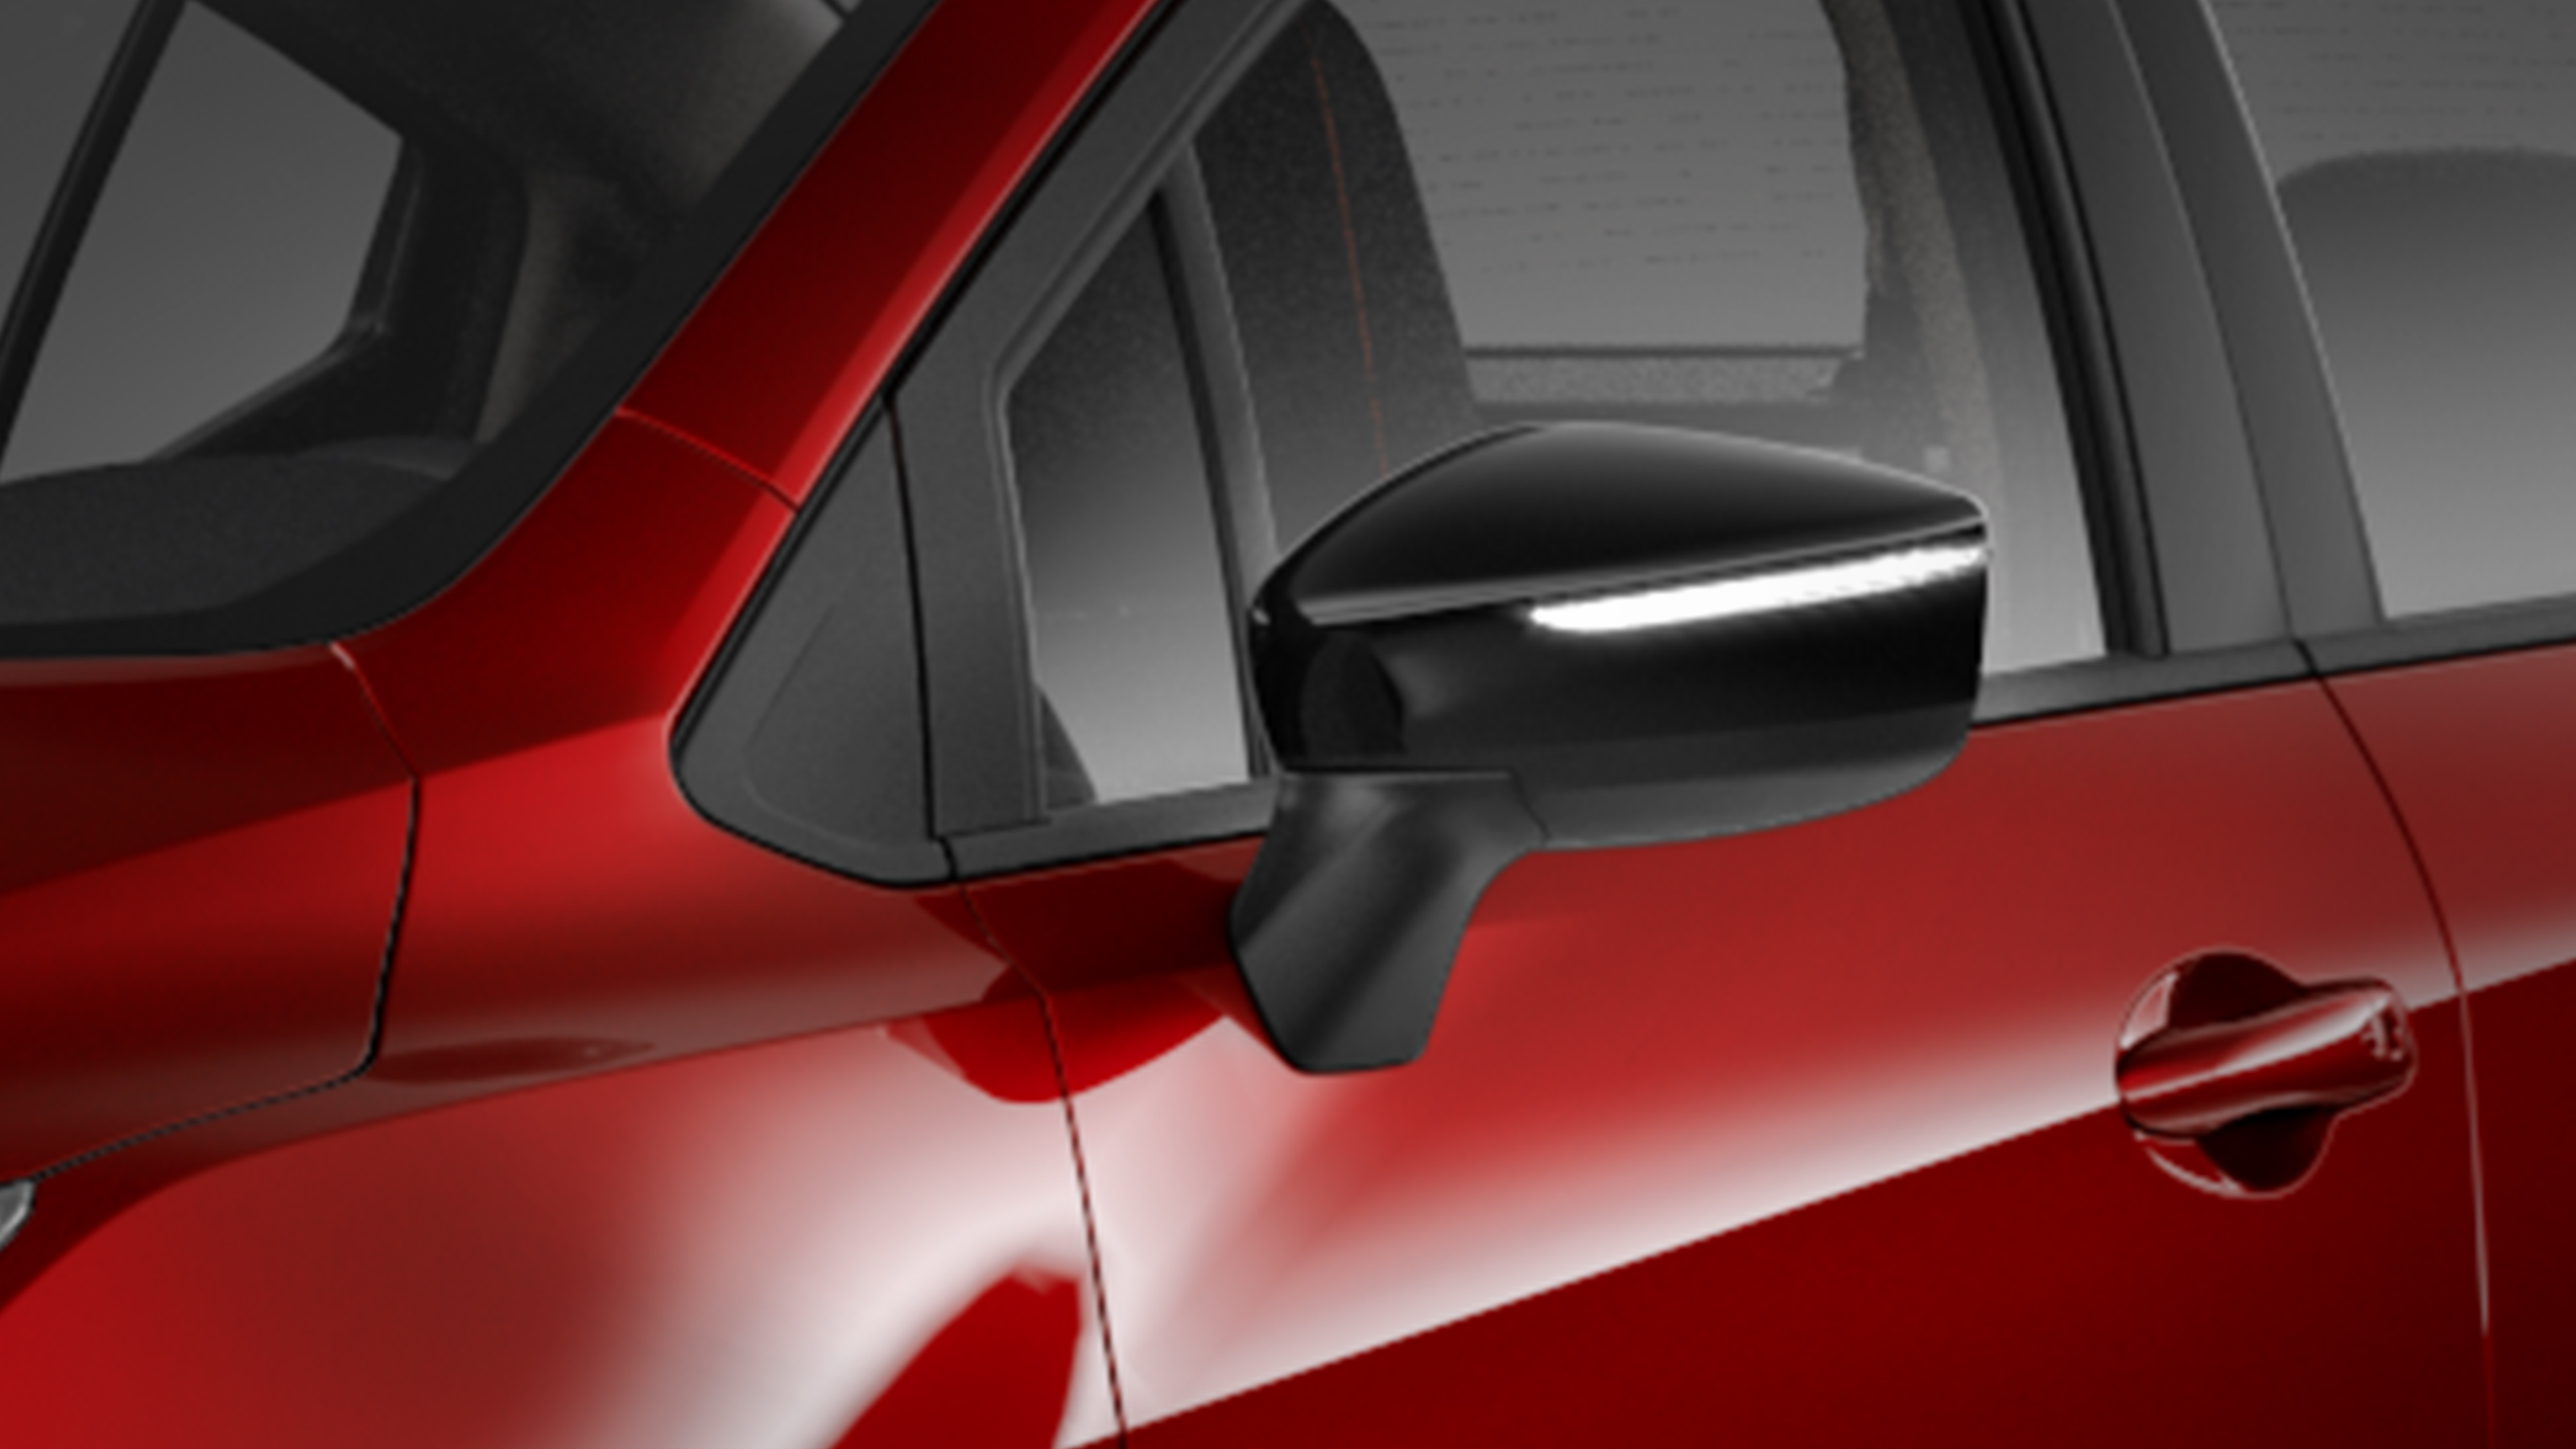 2020 Nissan Versa heated exterior mirrors